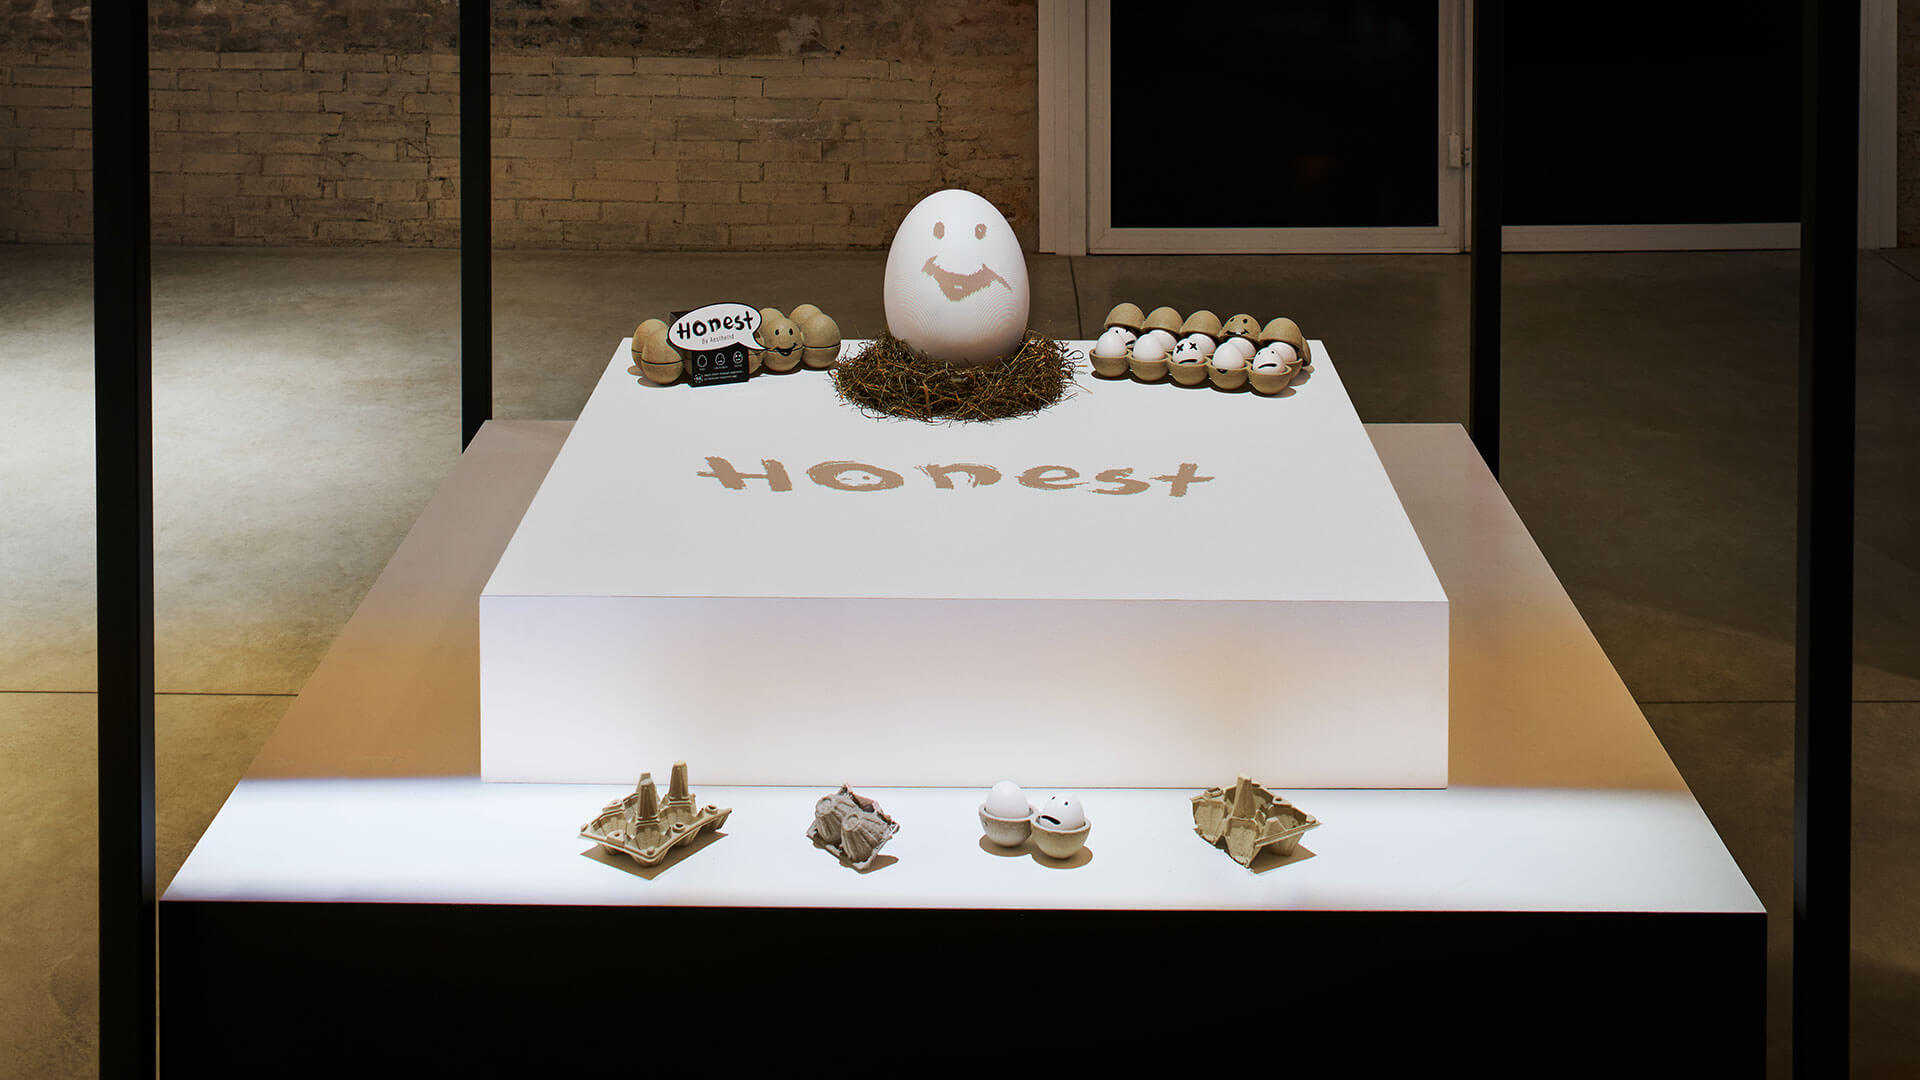 lexus lda 2018 winners gallery protoype honest egg